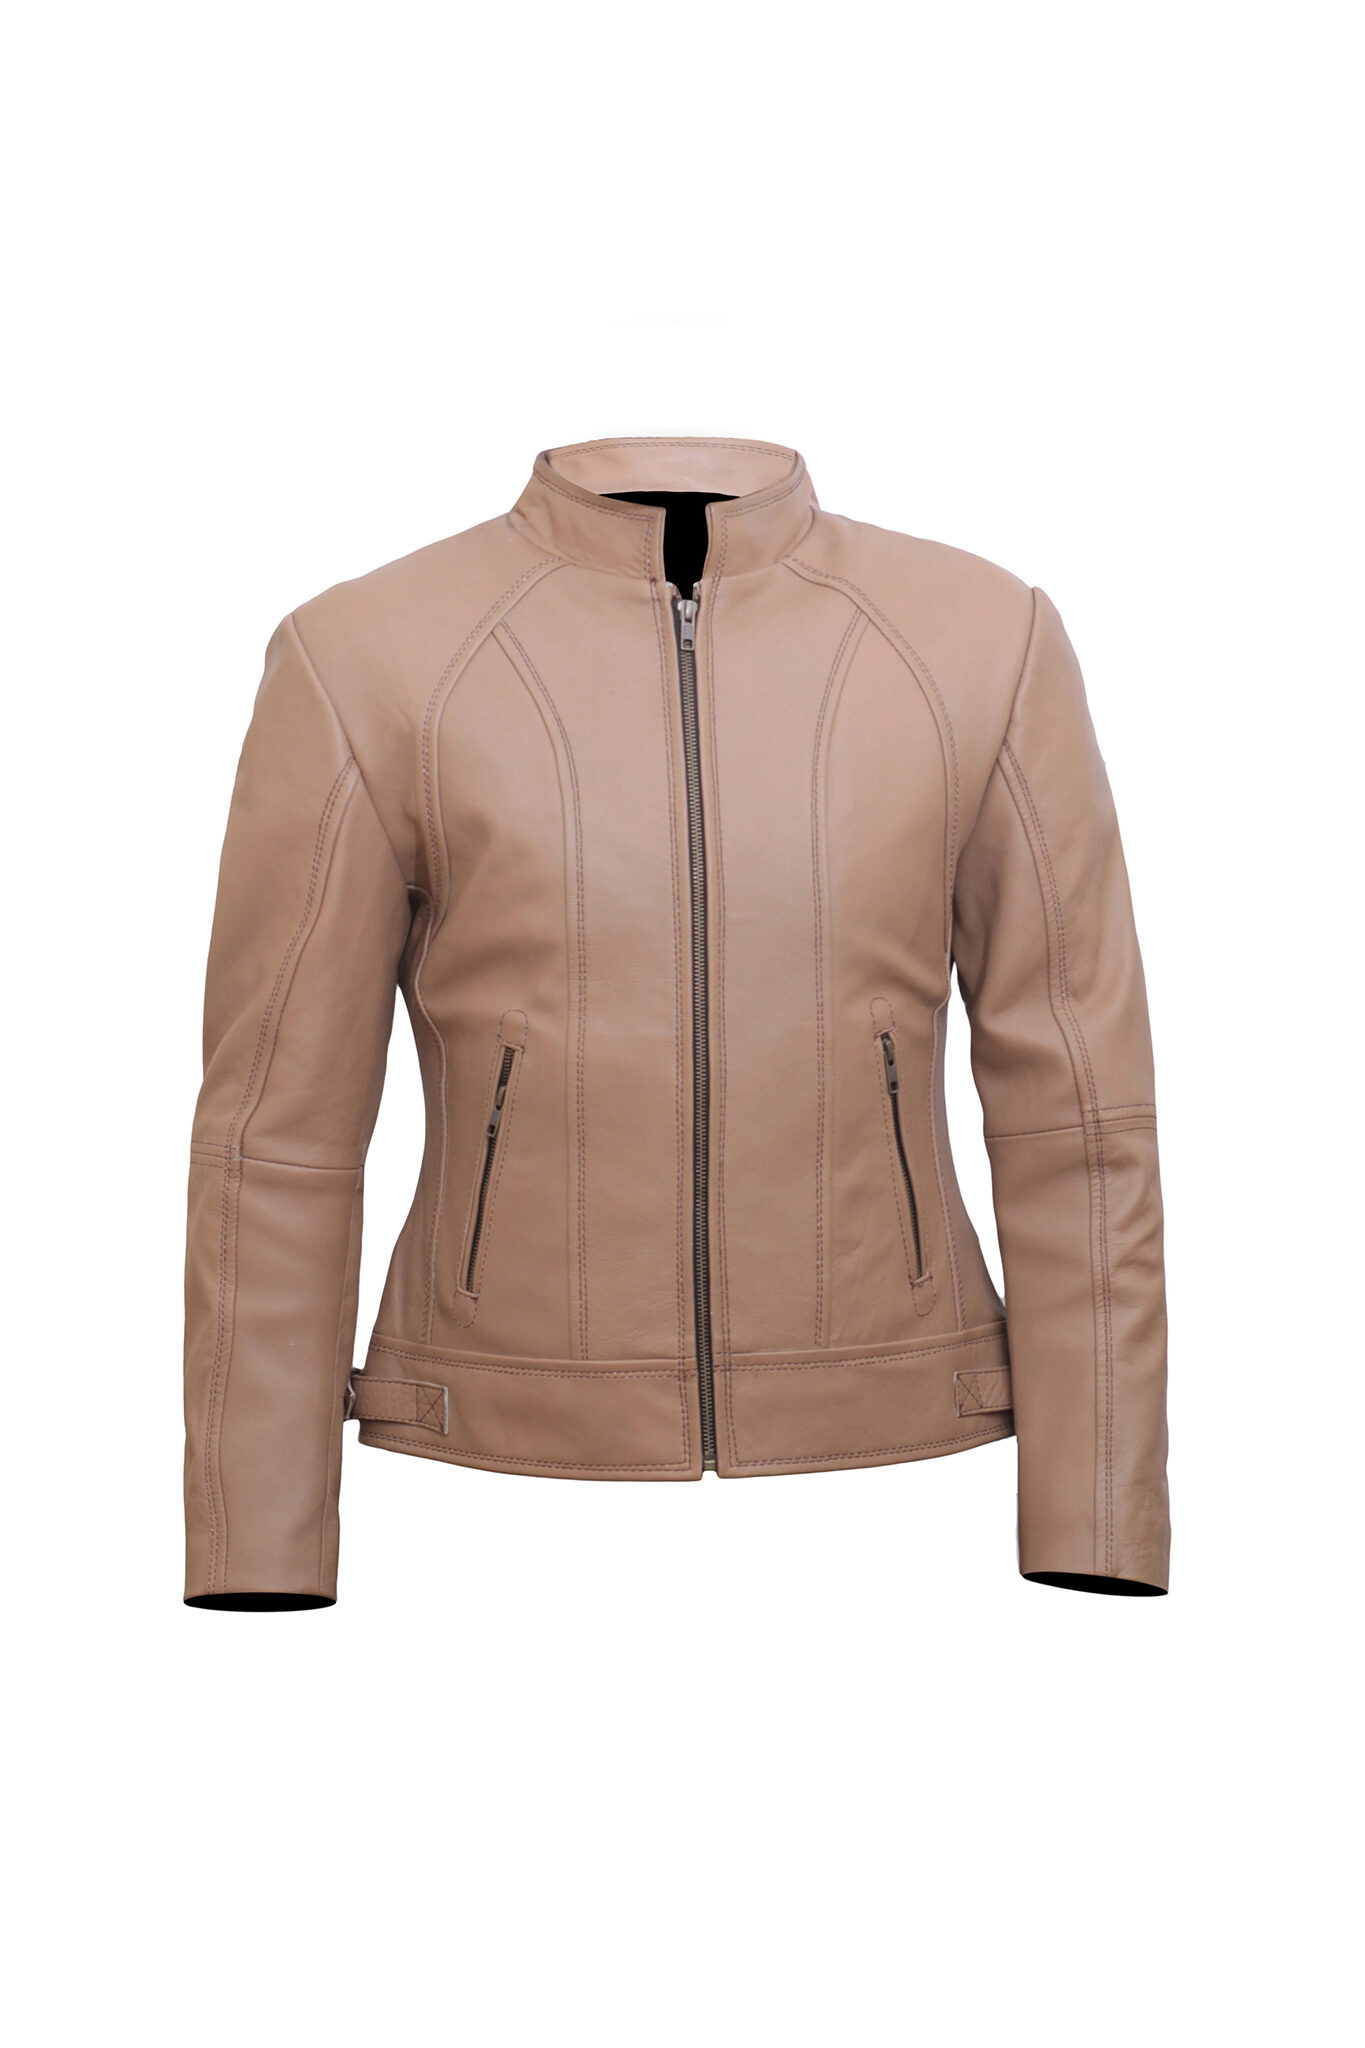 Brown Leather Jacket Women – Motorbike Jacket Women – Leather Jackets for Women